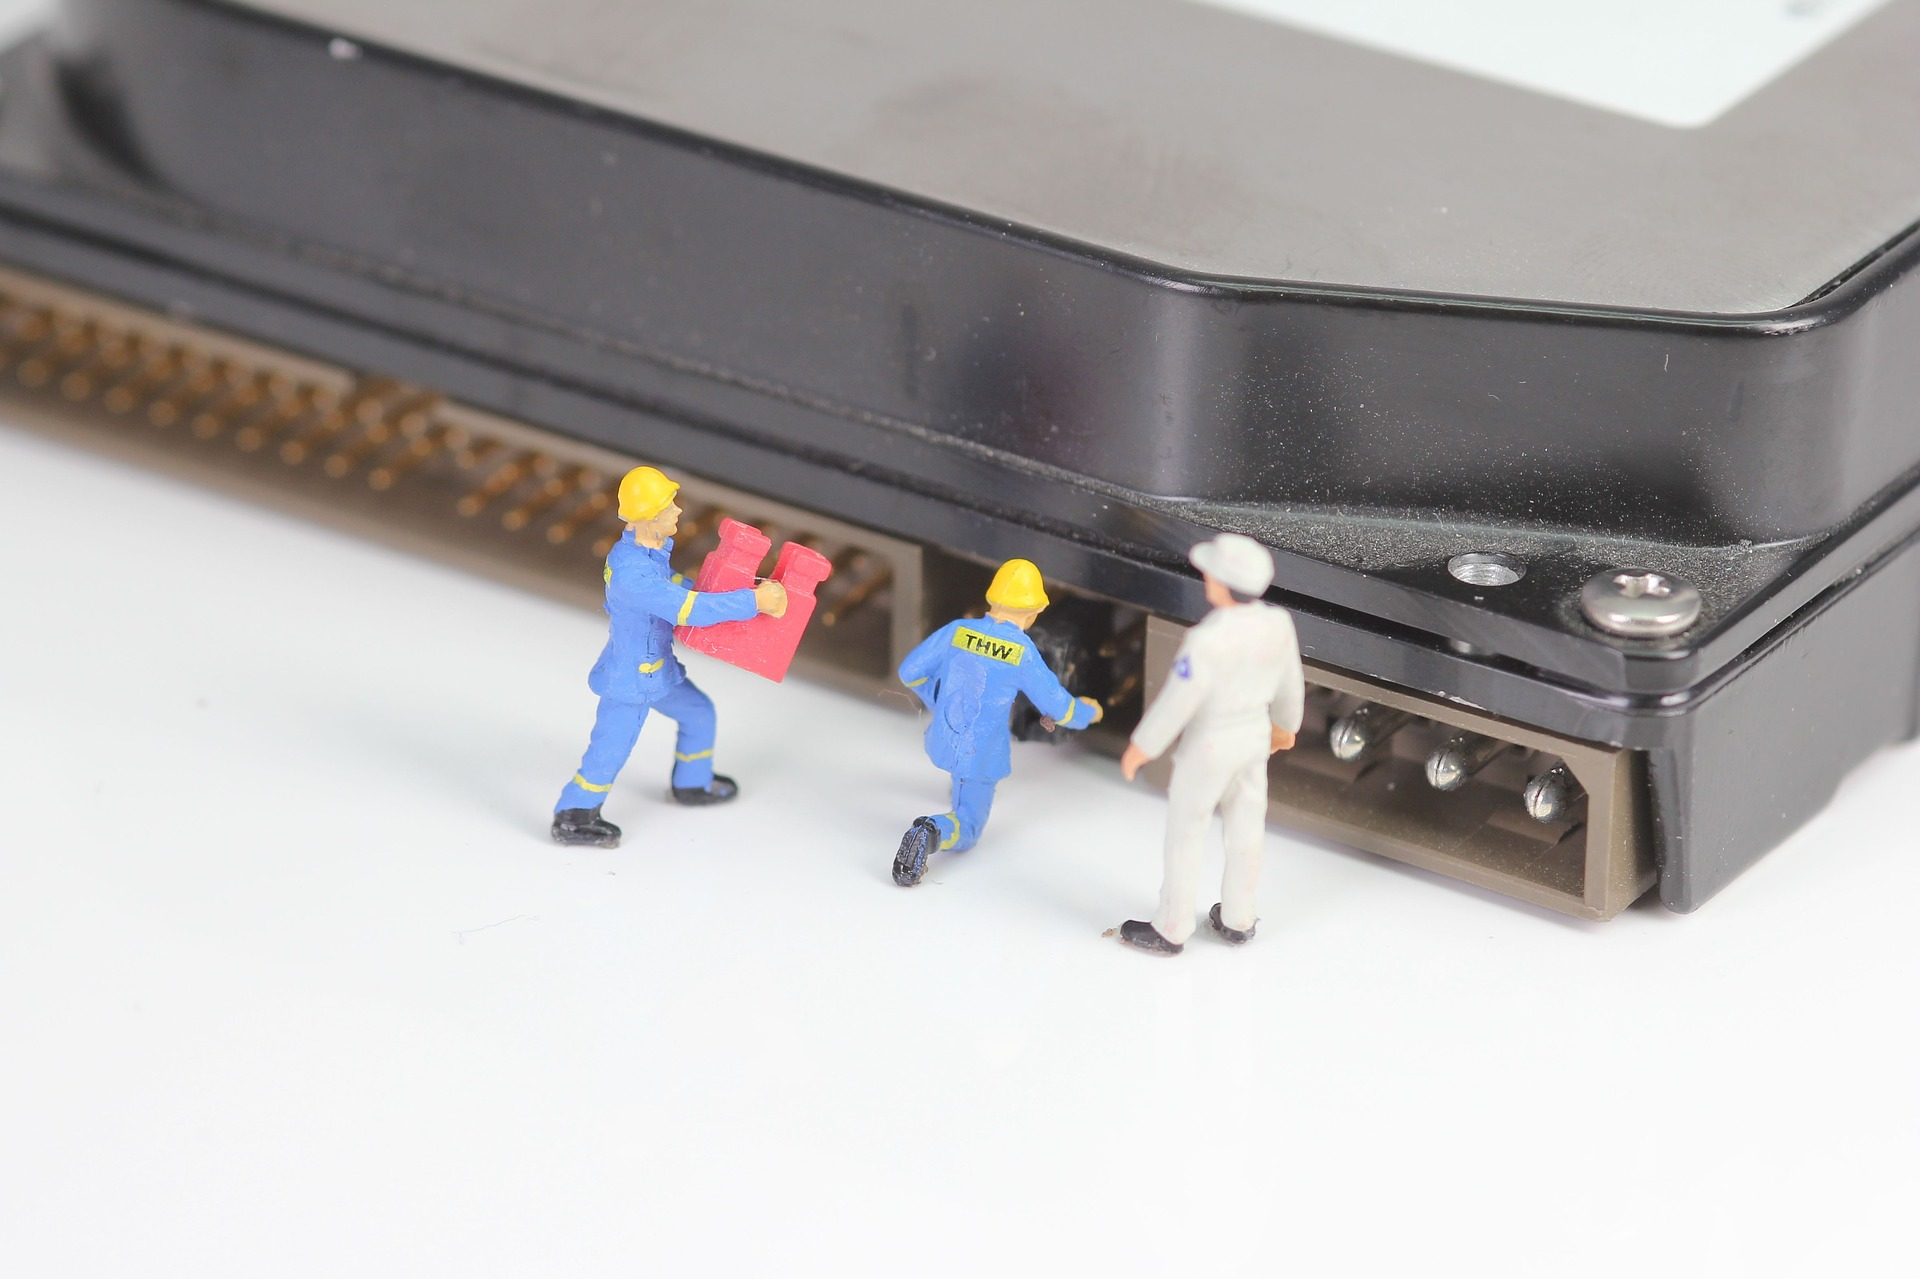 Miniature clay workmen adding and removing pieces from the back of a computer